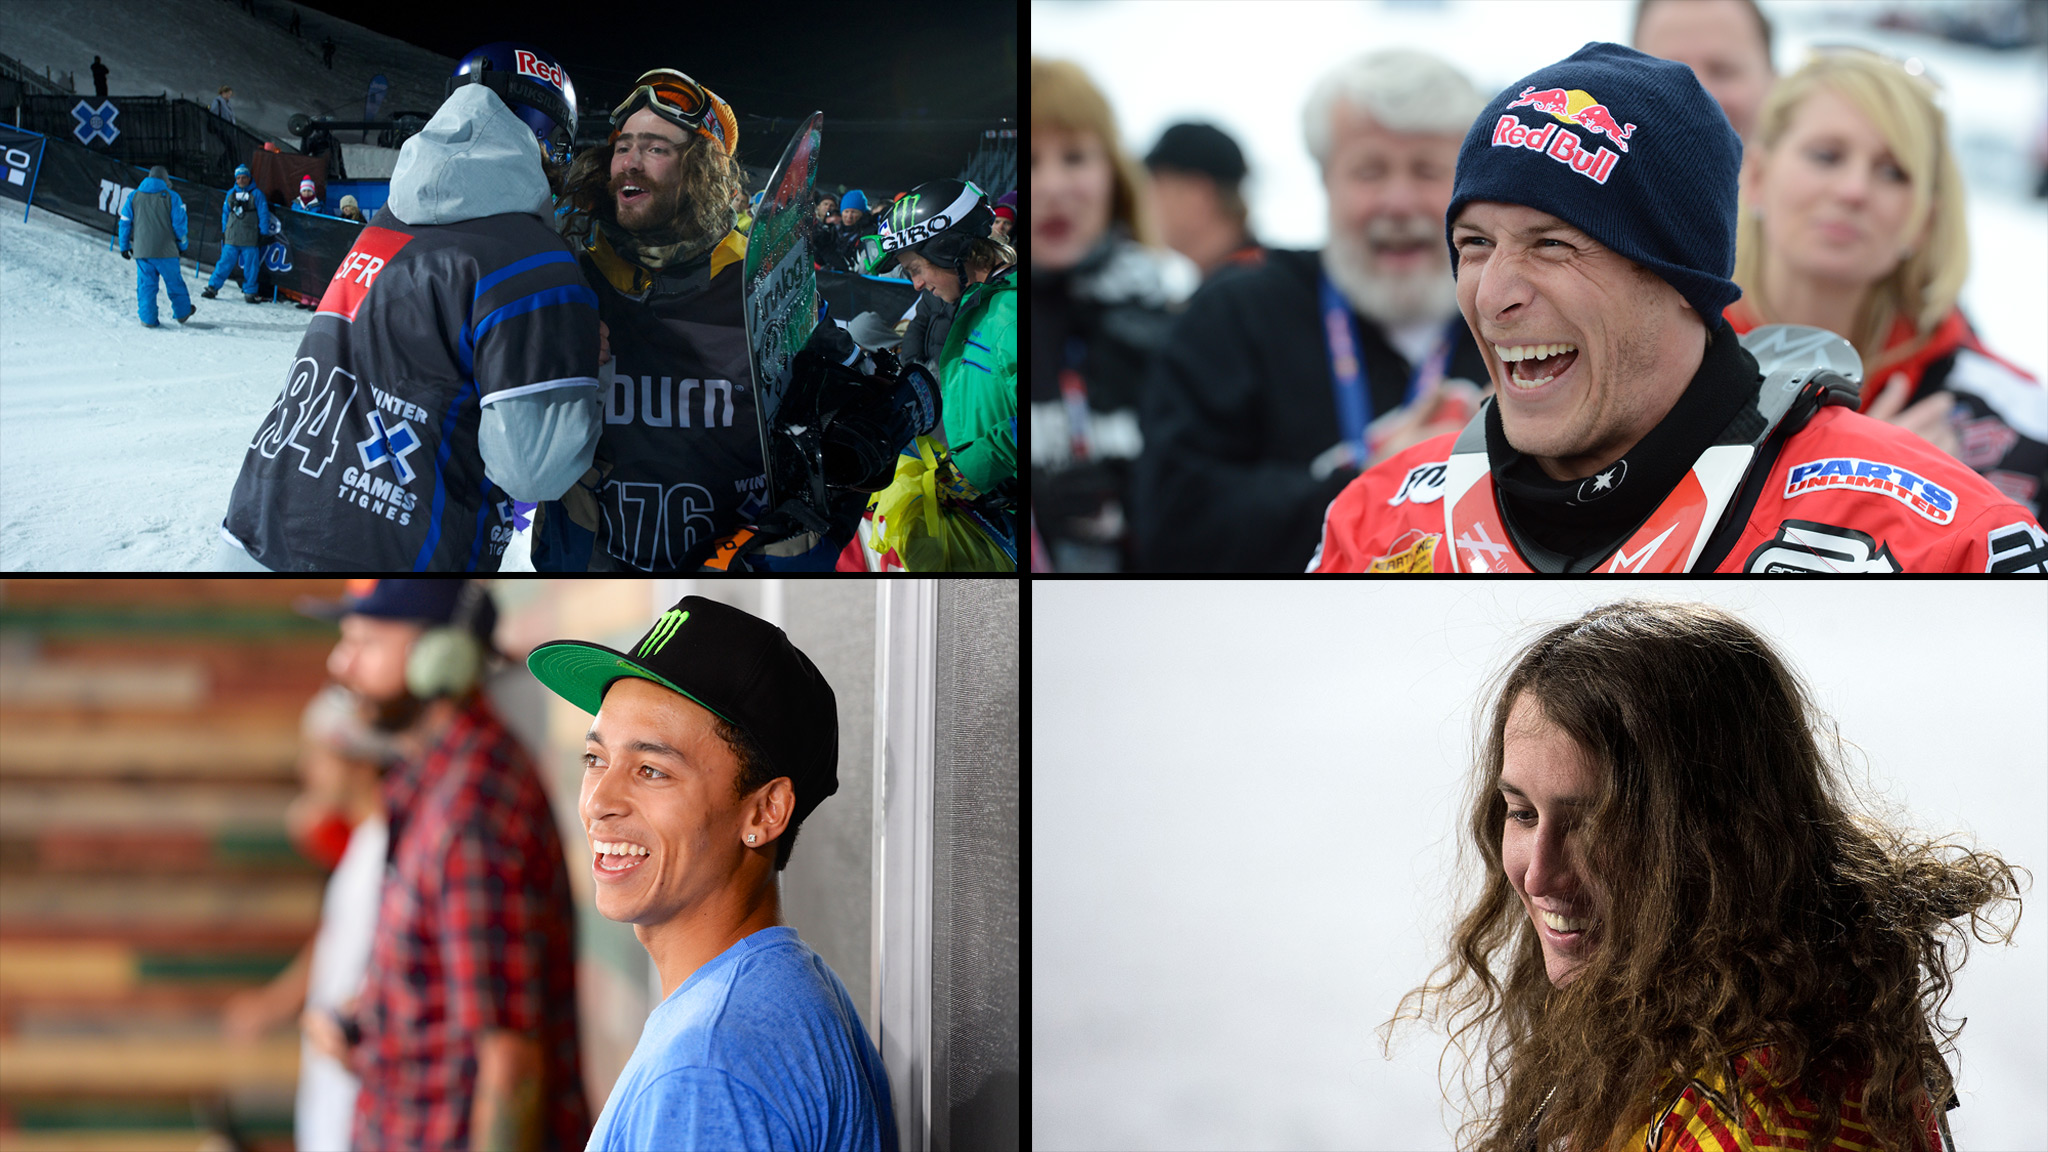 Chat live from Buttermilk Mountain with guests Danny Davis, Nyjah Huston, Colten Moore, Levi LaVallee and more of your favorite athletes on X Games Extra on Spreecast following Thursday night's X Games broadcast.